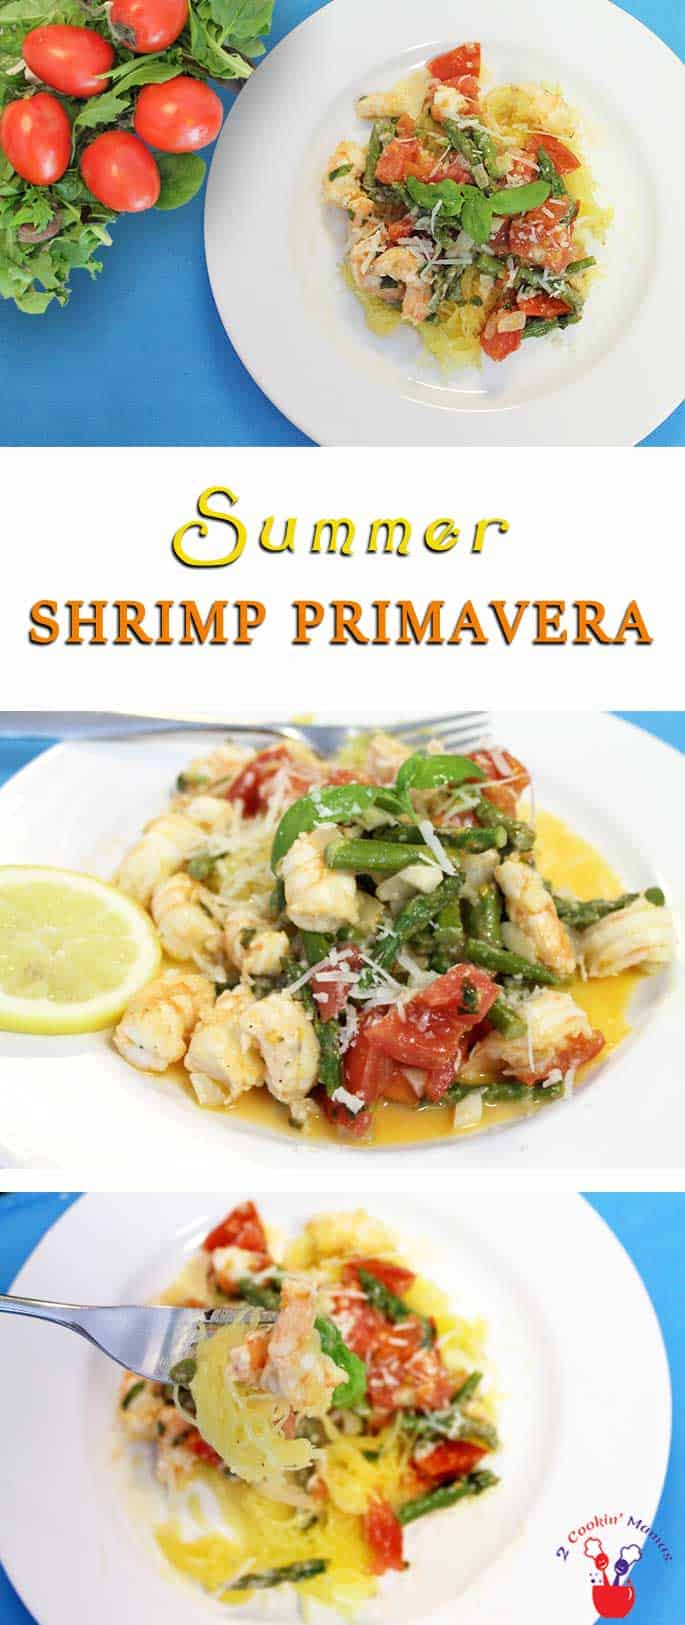 Healthy summer shrimp primavera 2 cookin mamas a light summertime dinner recipe summer shrimp primavera is full of seasonal vegetables shrimp forumfinder Gallery